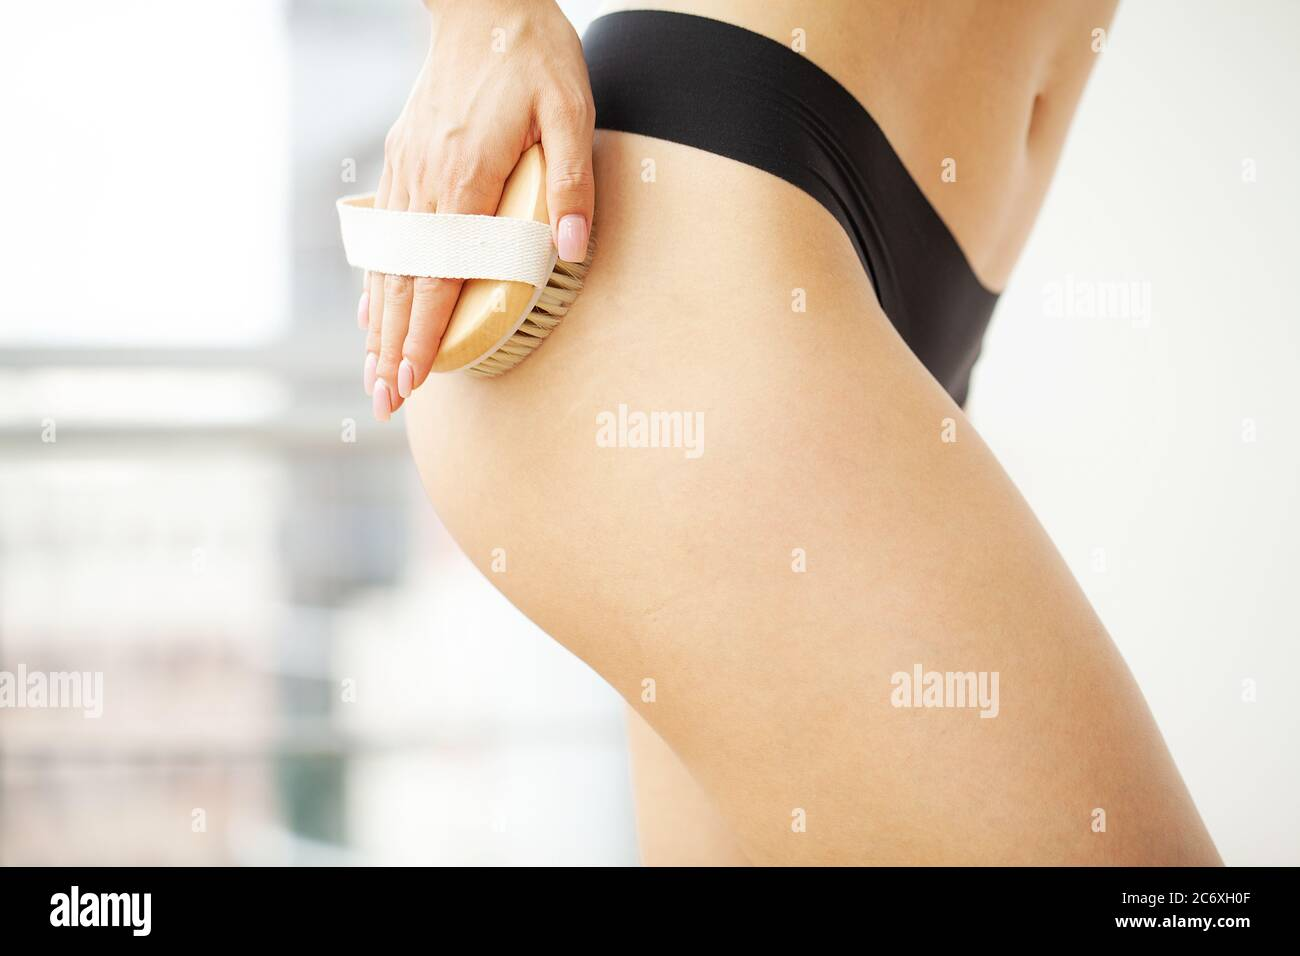 Cellulite Treatment Woman Arm Holding Dry Brush To Top Of Her Leg Stock Photo Alamy